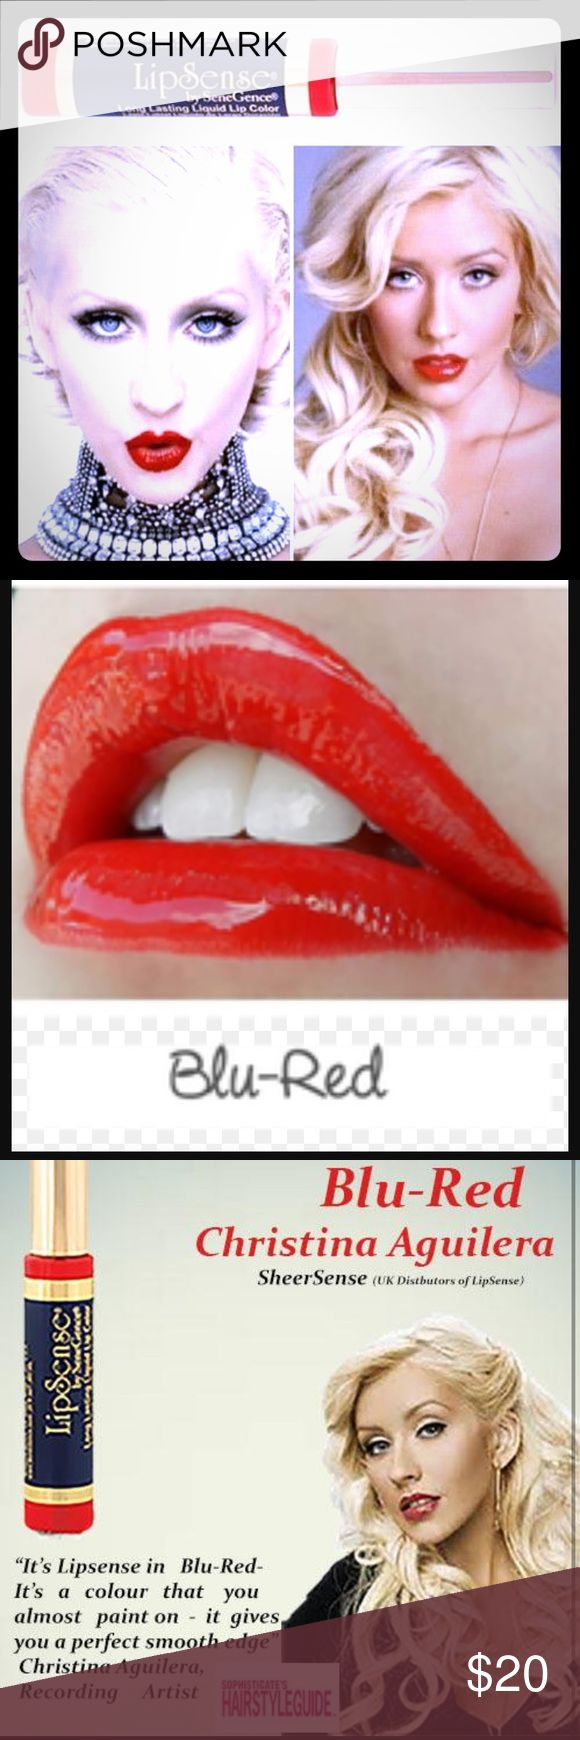 On Sale! LipSense most popular color discounted! One Blu Red tube of LipSense, brand New and sealed and discounted  for a limited time! Makeup Lipstick